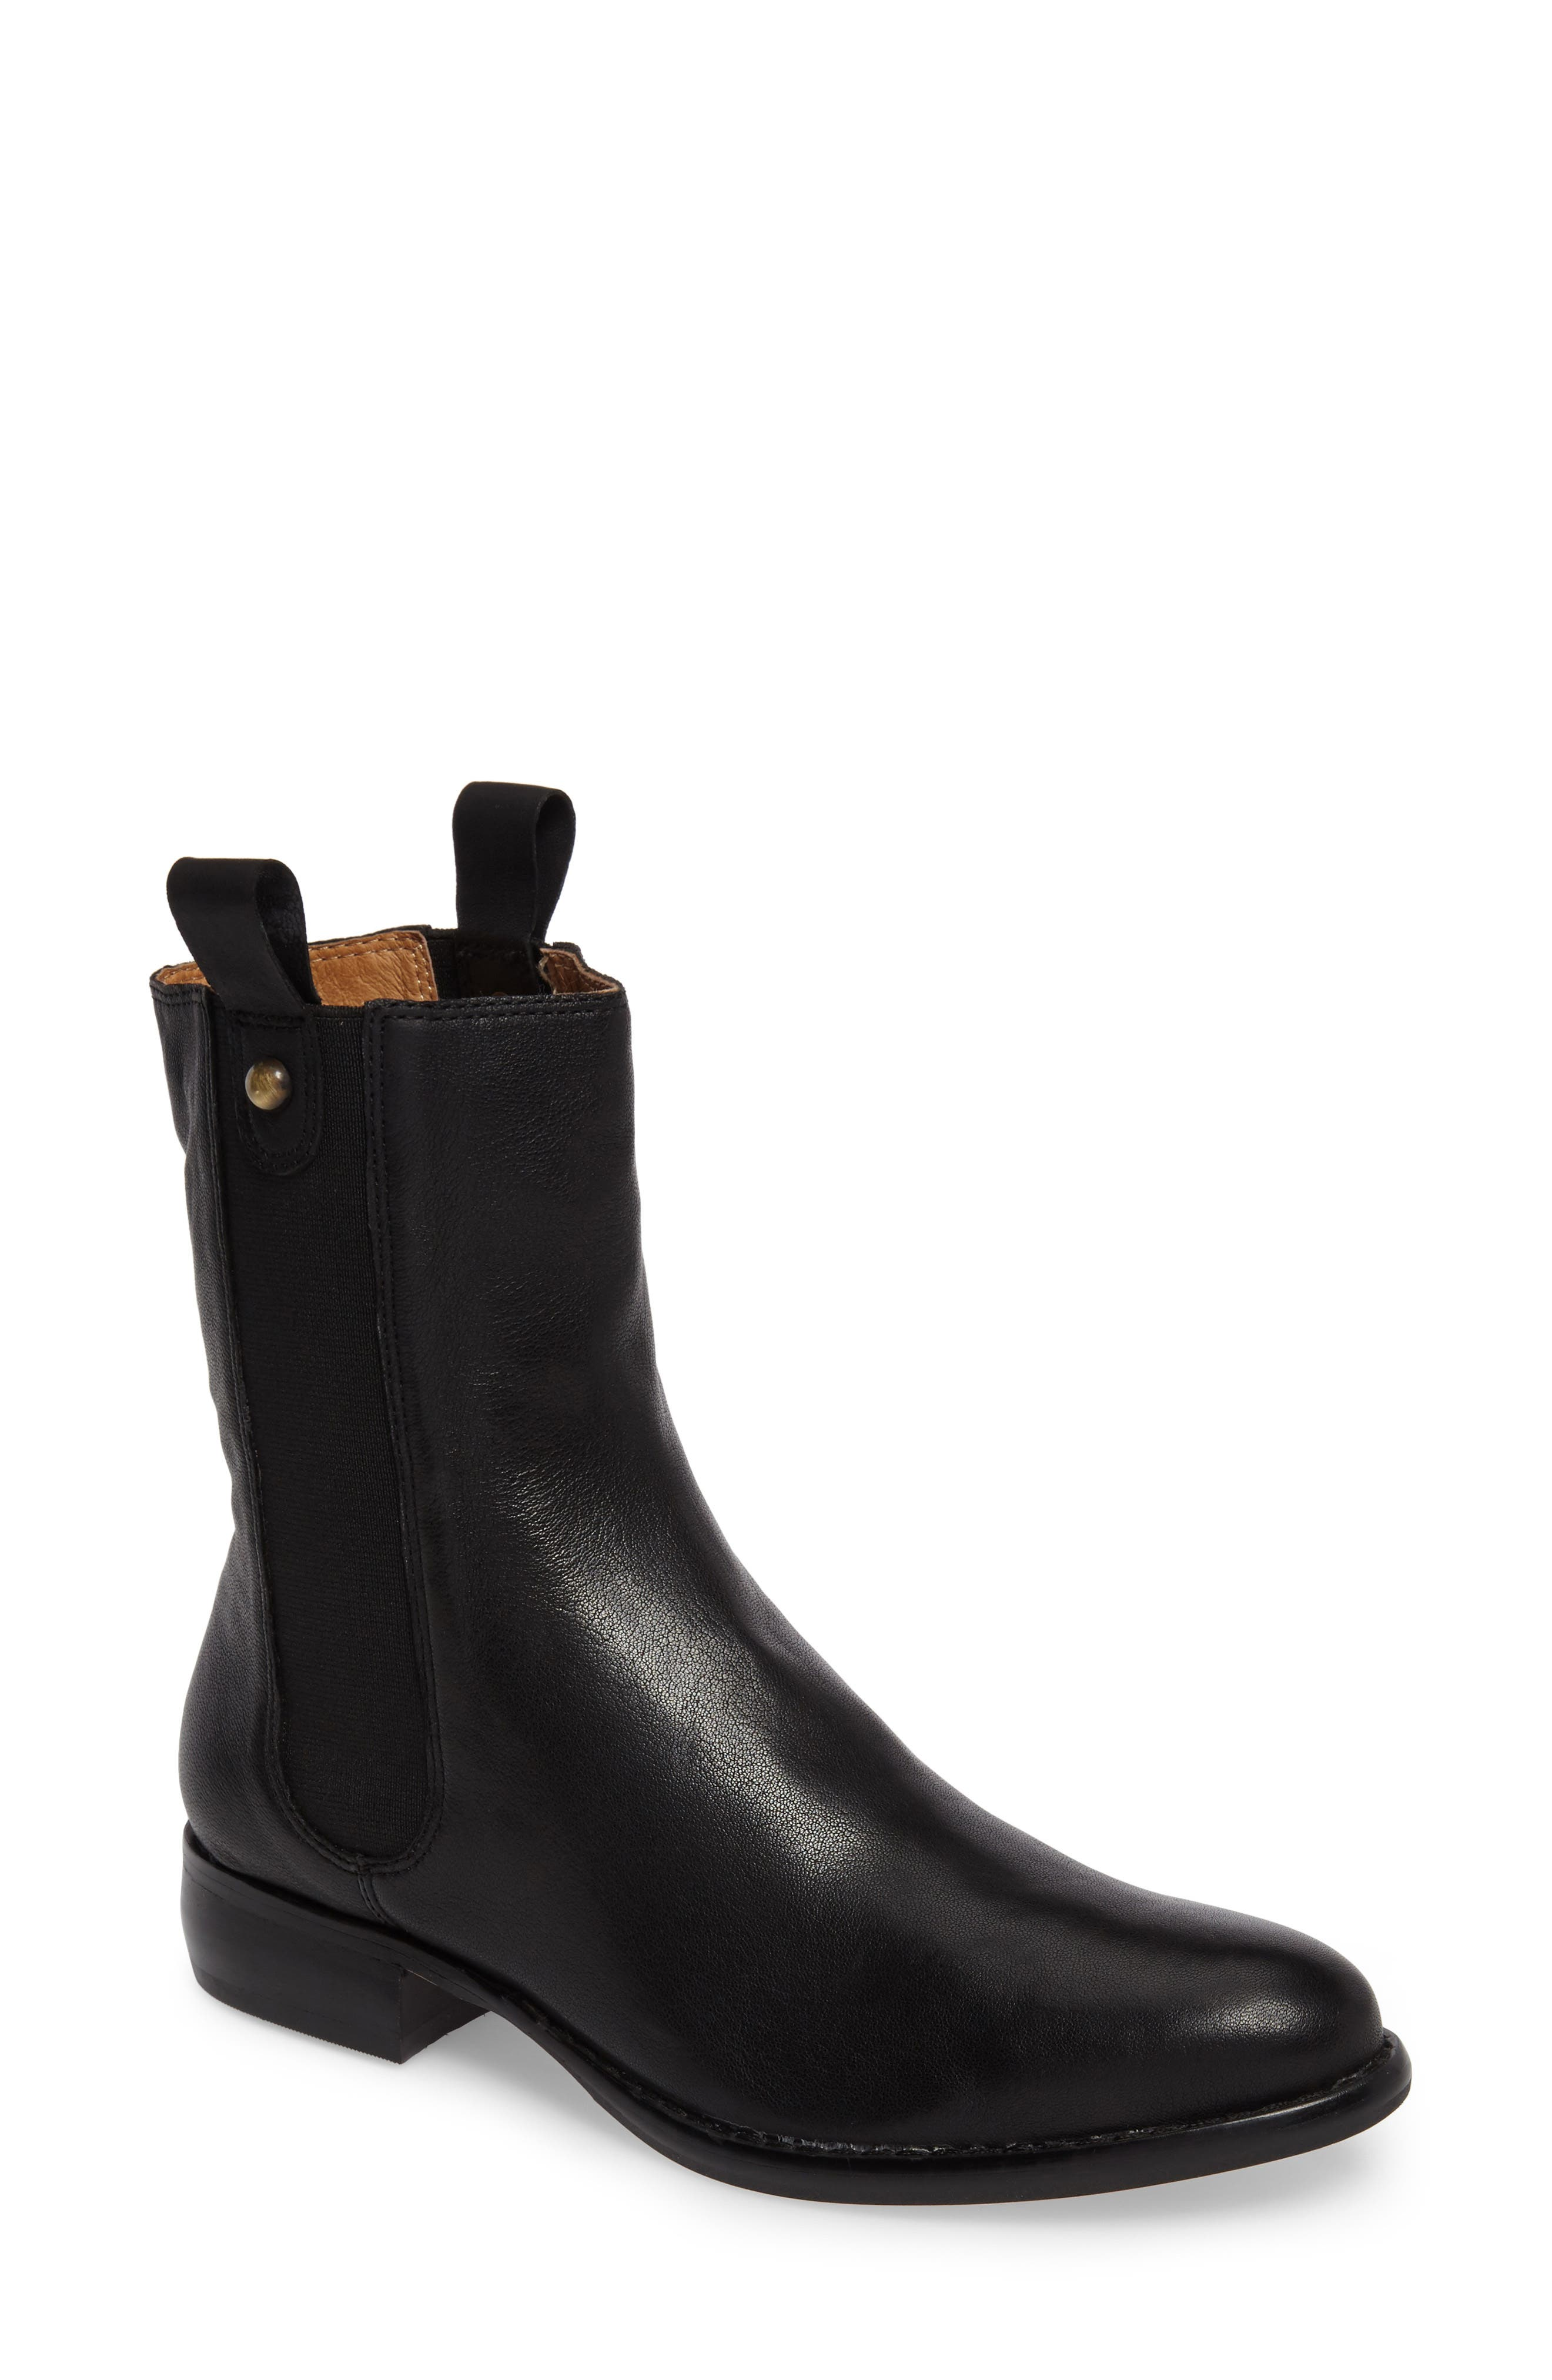 CC Corso Como Armando Boot,                         Main,                         color, 001